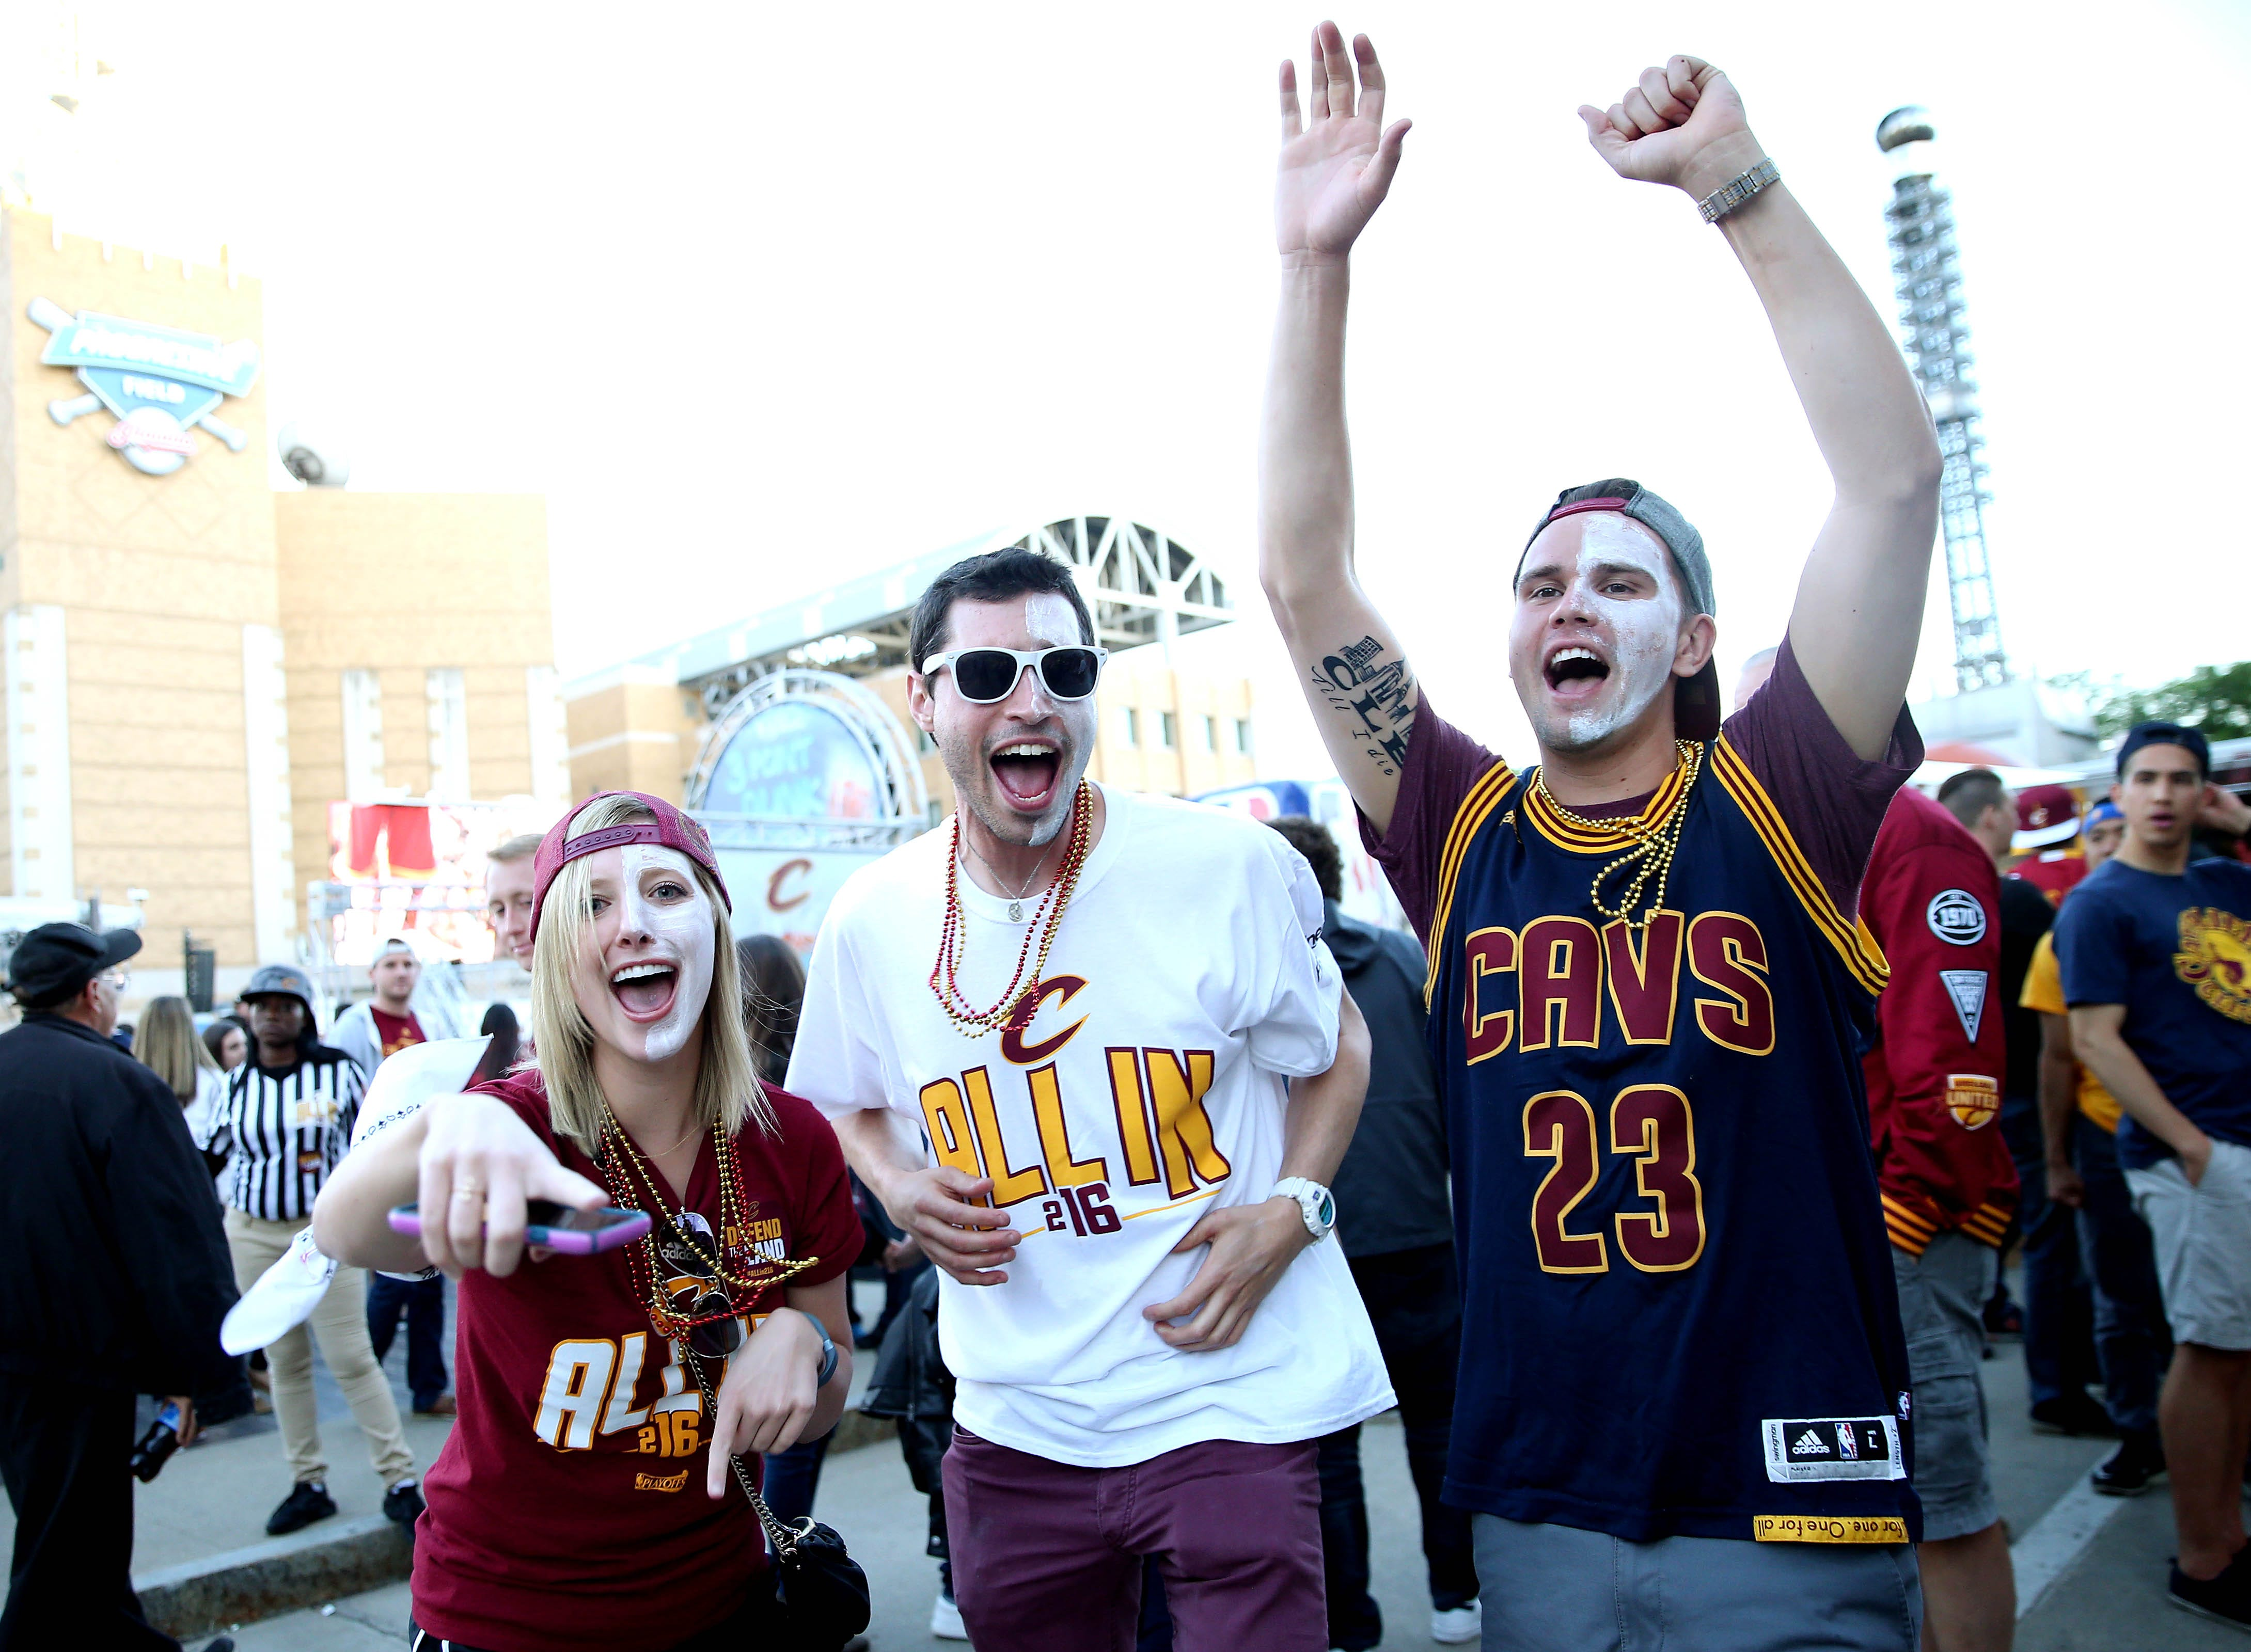 abc10.com | ABC viewership still flourishing after yet another lopsided NBA Finals game